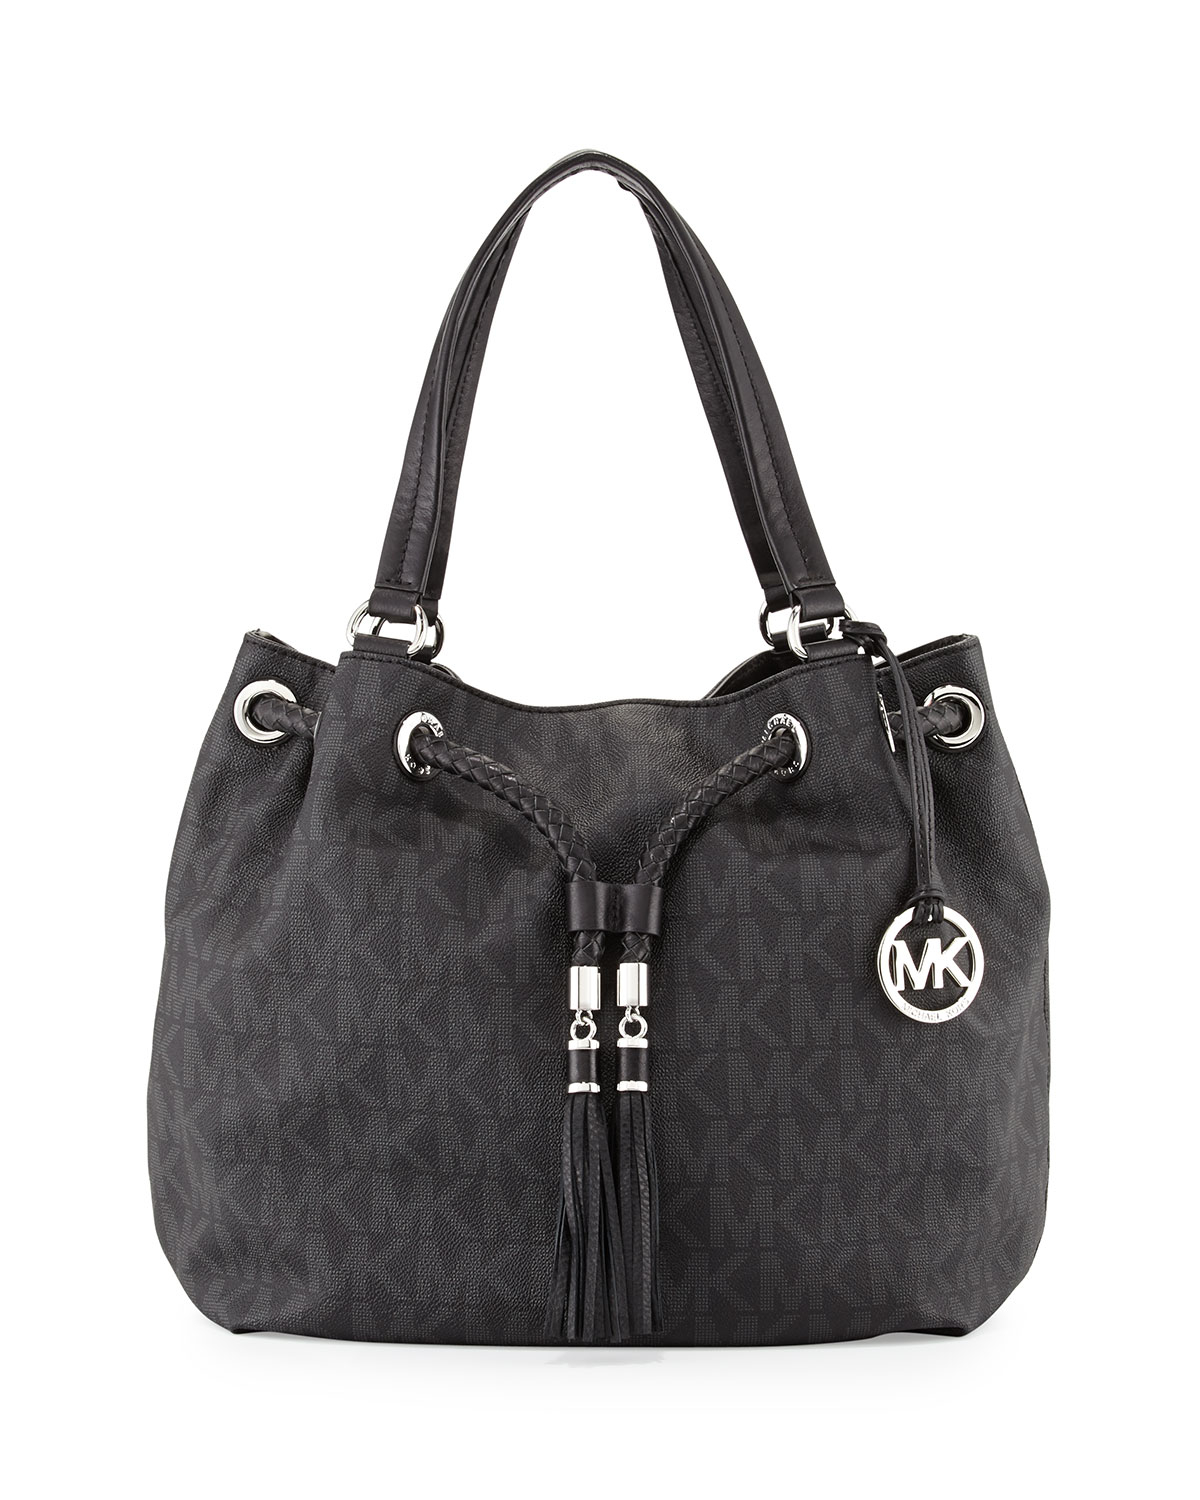 ca46d342ac17 MICHAEL Michael Kors Jet Set Large Gathered Tote Bag in Black - Lyst